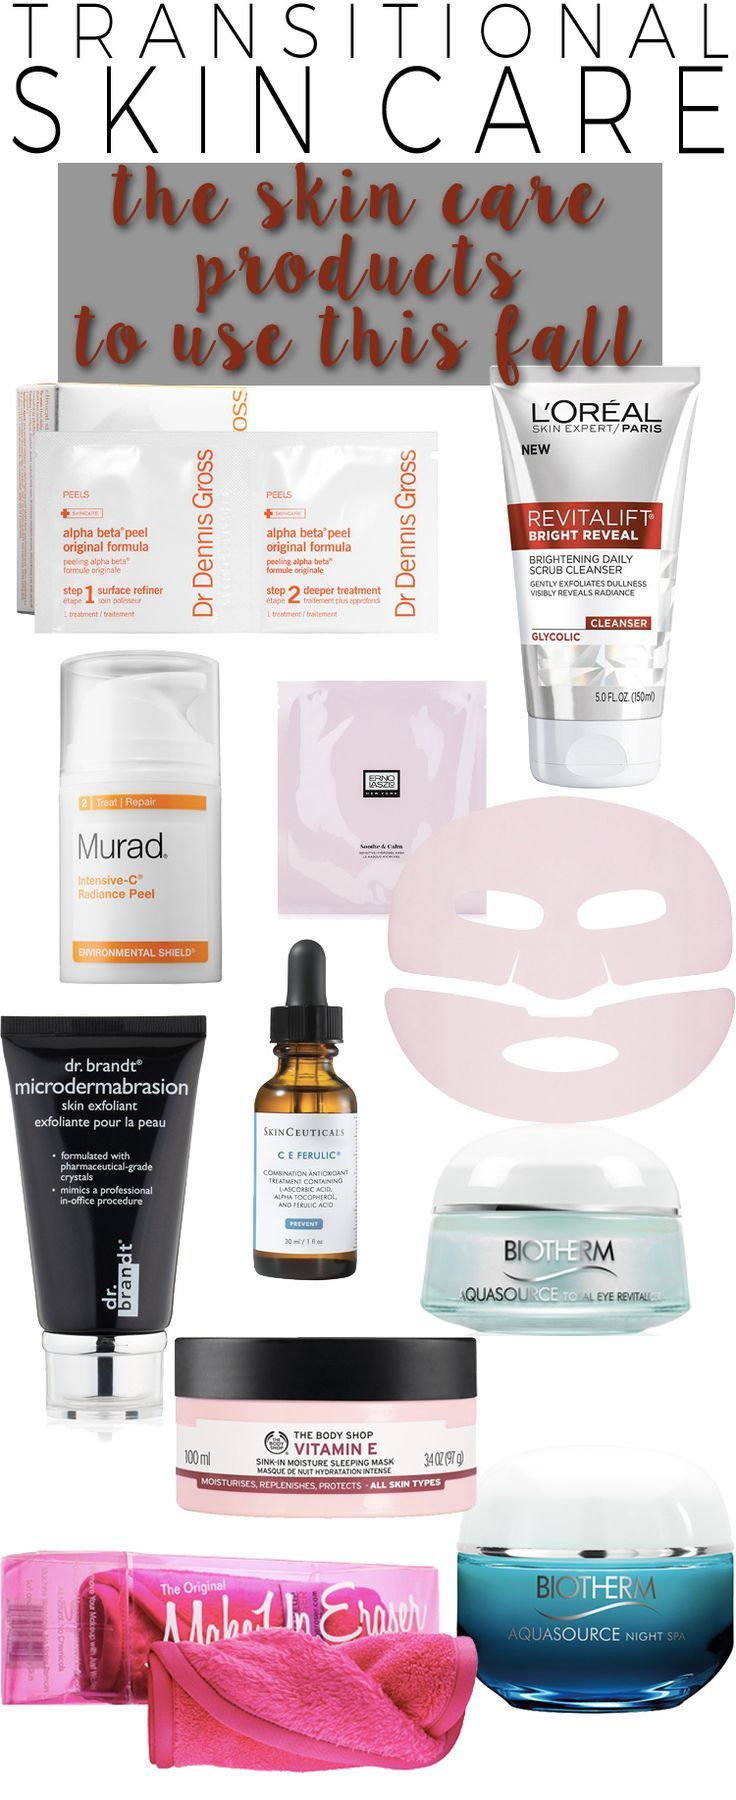 Transitional Skin Care 10 Products To Use In The Fall Beautiful Makeup Search How To Apply Makeup Skin Care How To Exfoliate Skin